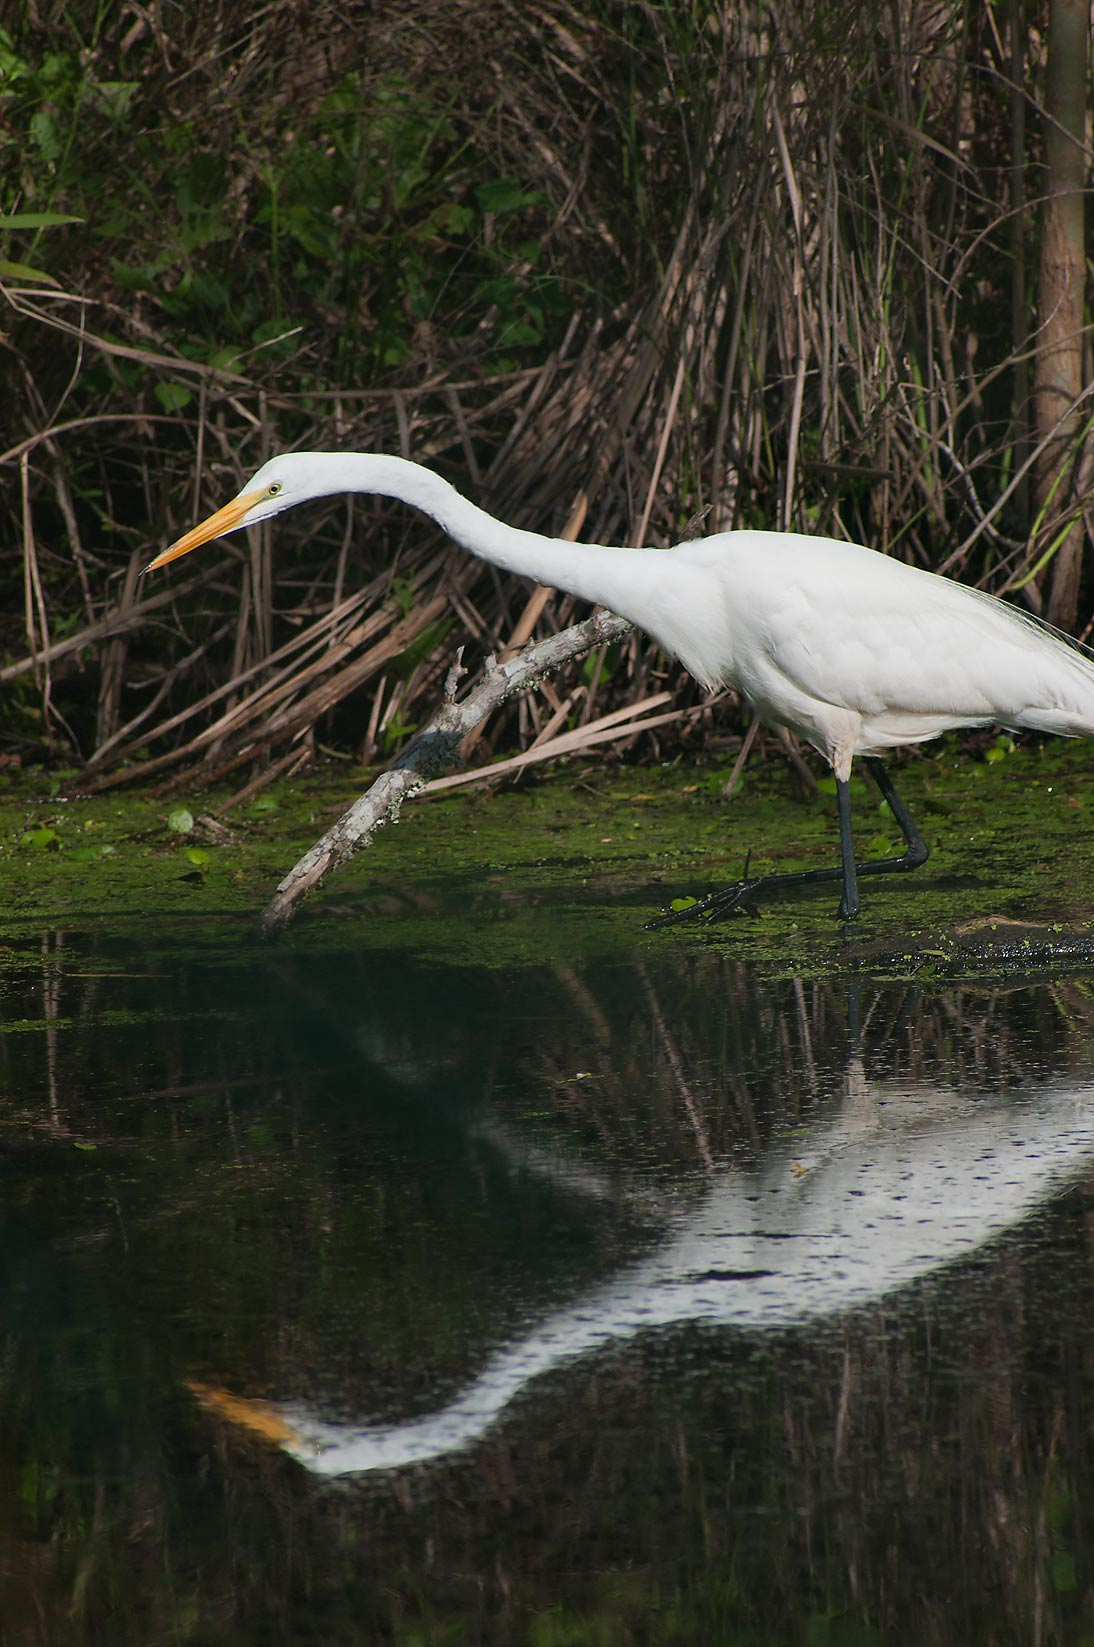 Great white egret (Ardea alba) bird looking for...Bend State Park. Needville, Texas